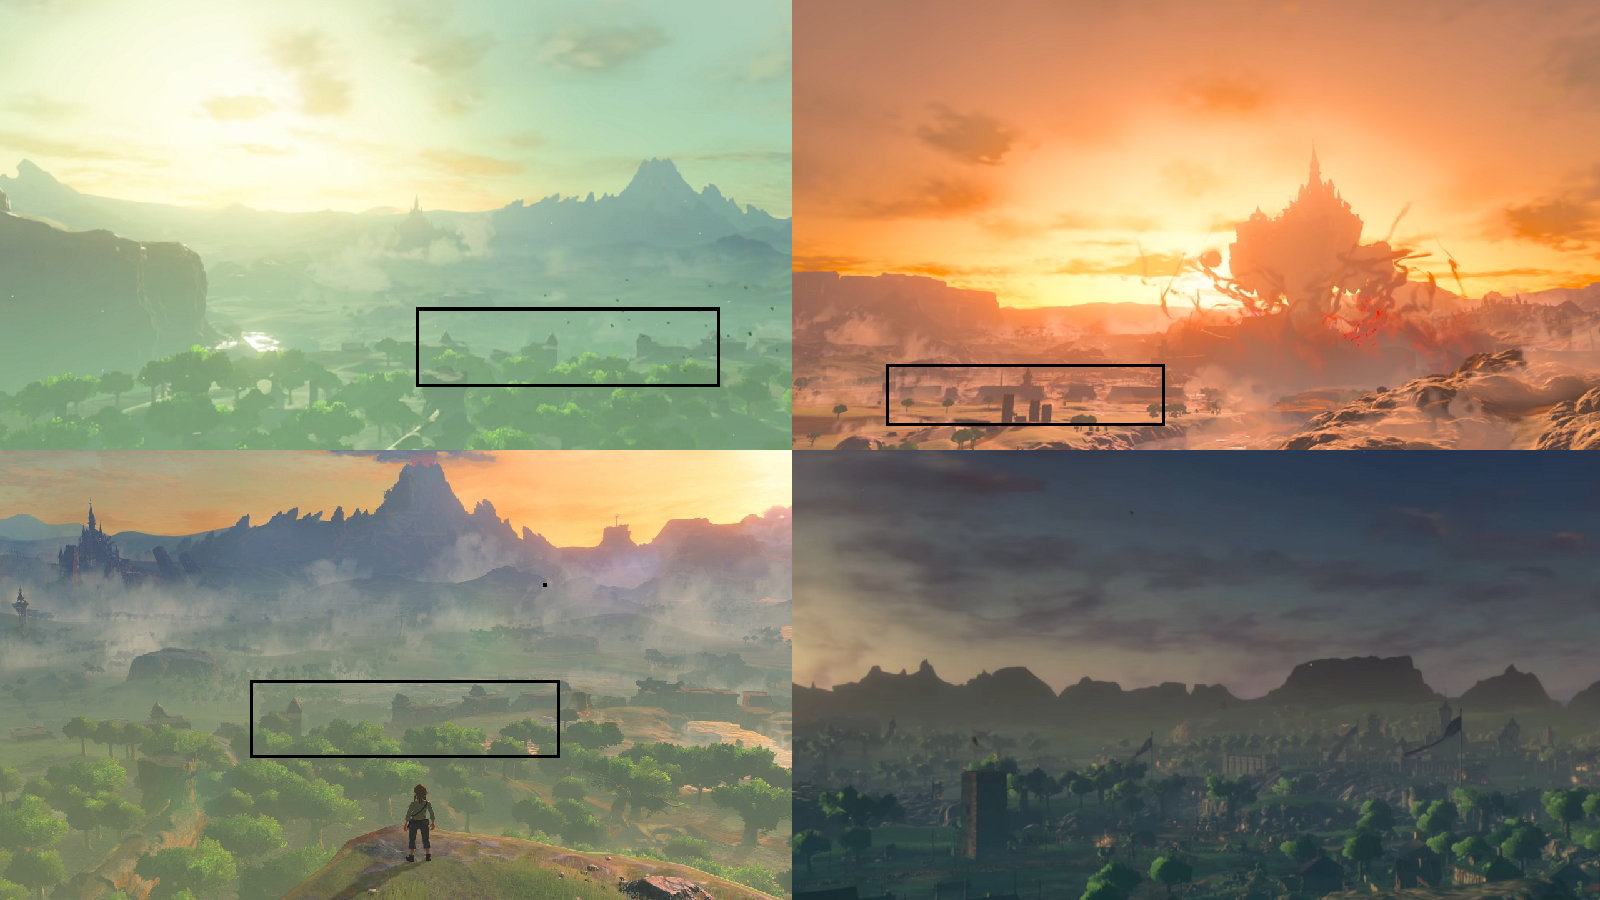 If you look at images of Central Hyrule from the first Breath of the Wild 2 teaser (top left) and second teaser (top right), they match up more with the ruin in BOTW 1 (bottom left) than the still somewhat intact villages and fortifications at the end of Age of Calamity (bottom right).